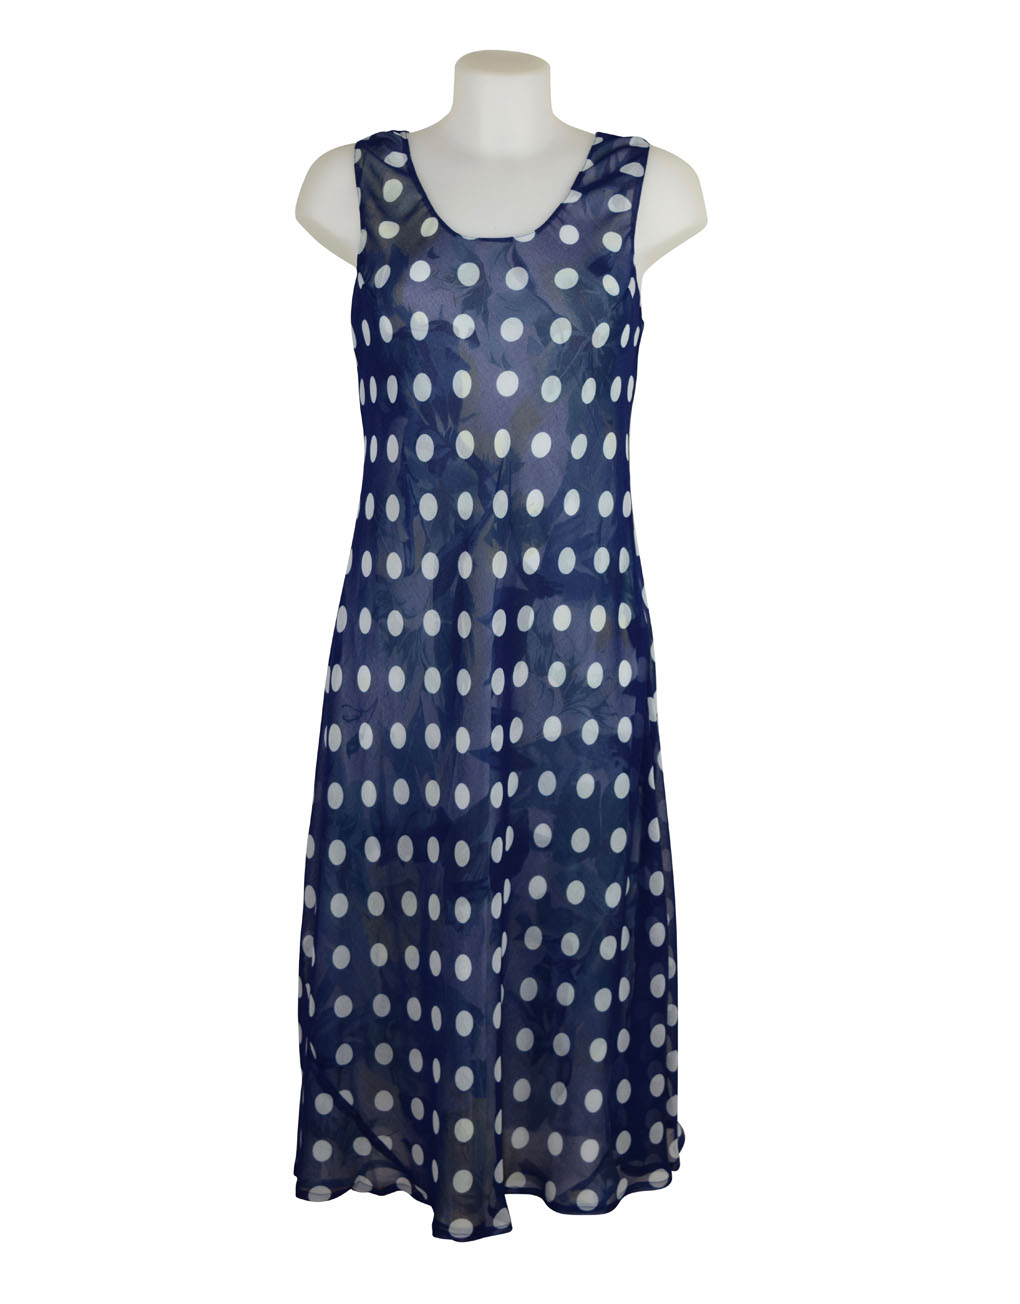 Paramour Reversible 2 In 1 Sleeveless Dress Navy & White Polka Dot / Floral L A